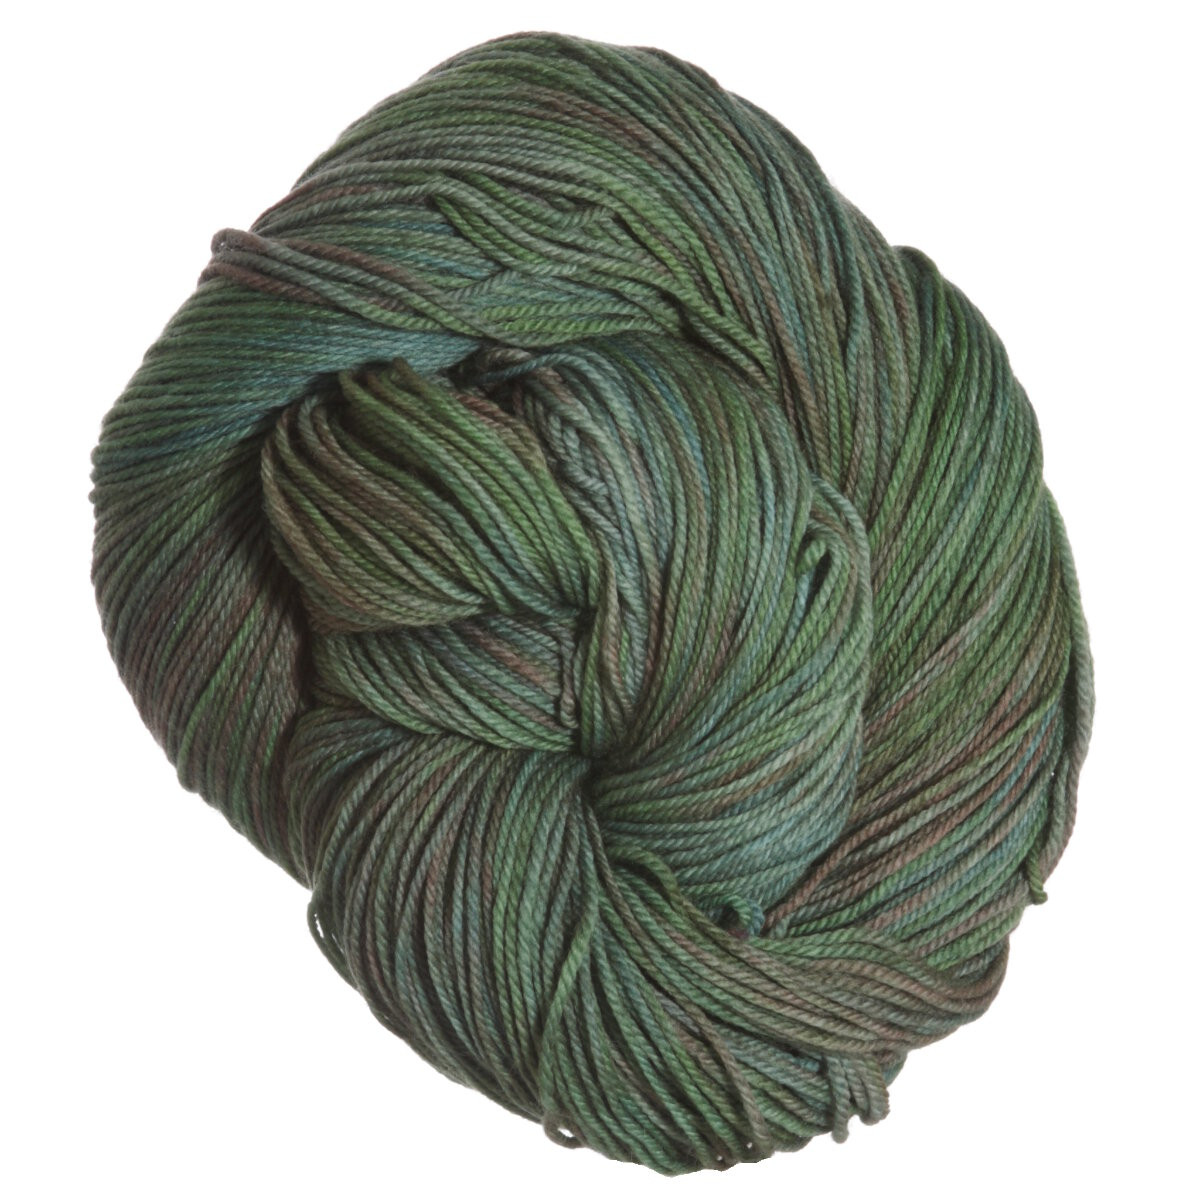 Dream In Color Yarn Awesome Dream In Color Smooshy Yarn 380 Goodluck Jade at Jimmy Of Incredible 42 Photos Dream In Color Yarn